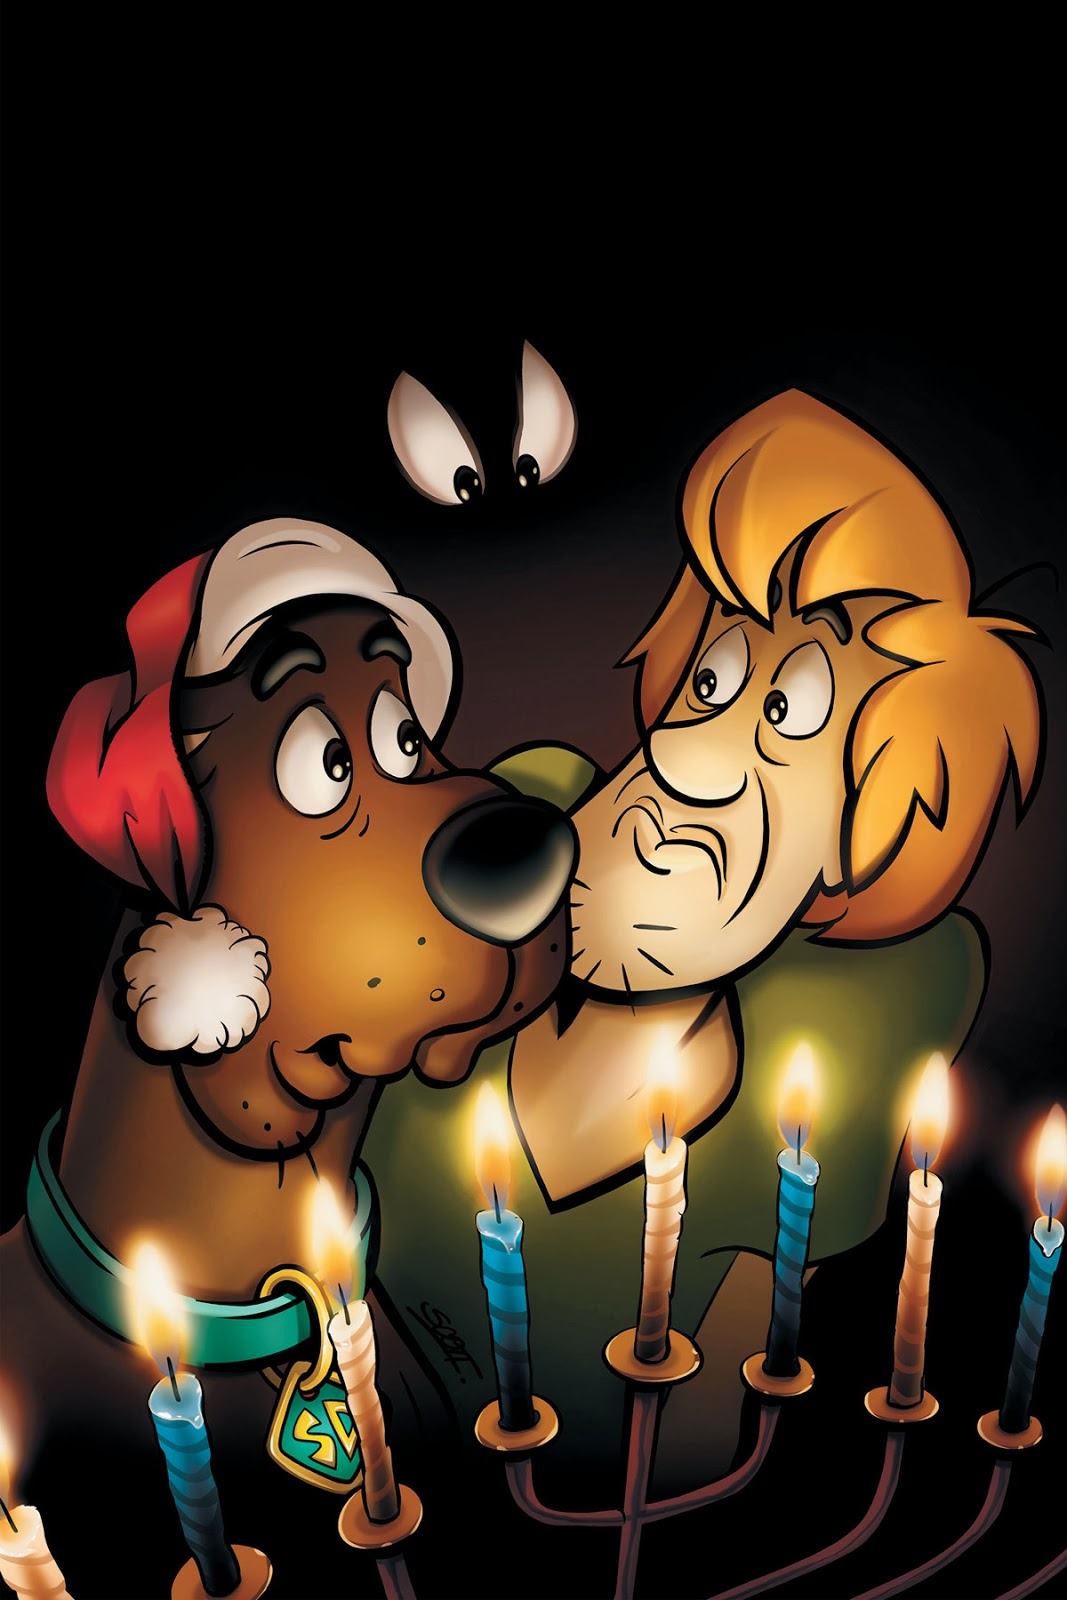 Scooby doo hd wallpapers 1080p hd wallpapers high definition scooby doo hd wallpapers 1080p hd wallpapers high definition free background voltagebd Images